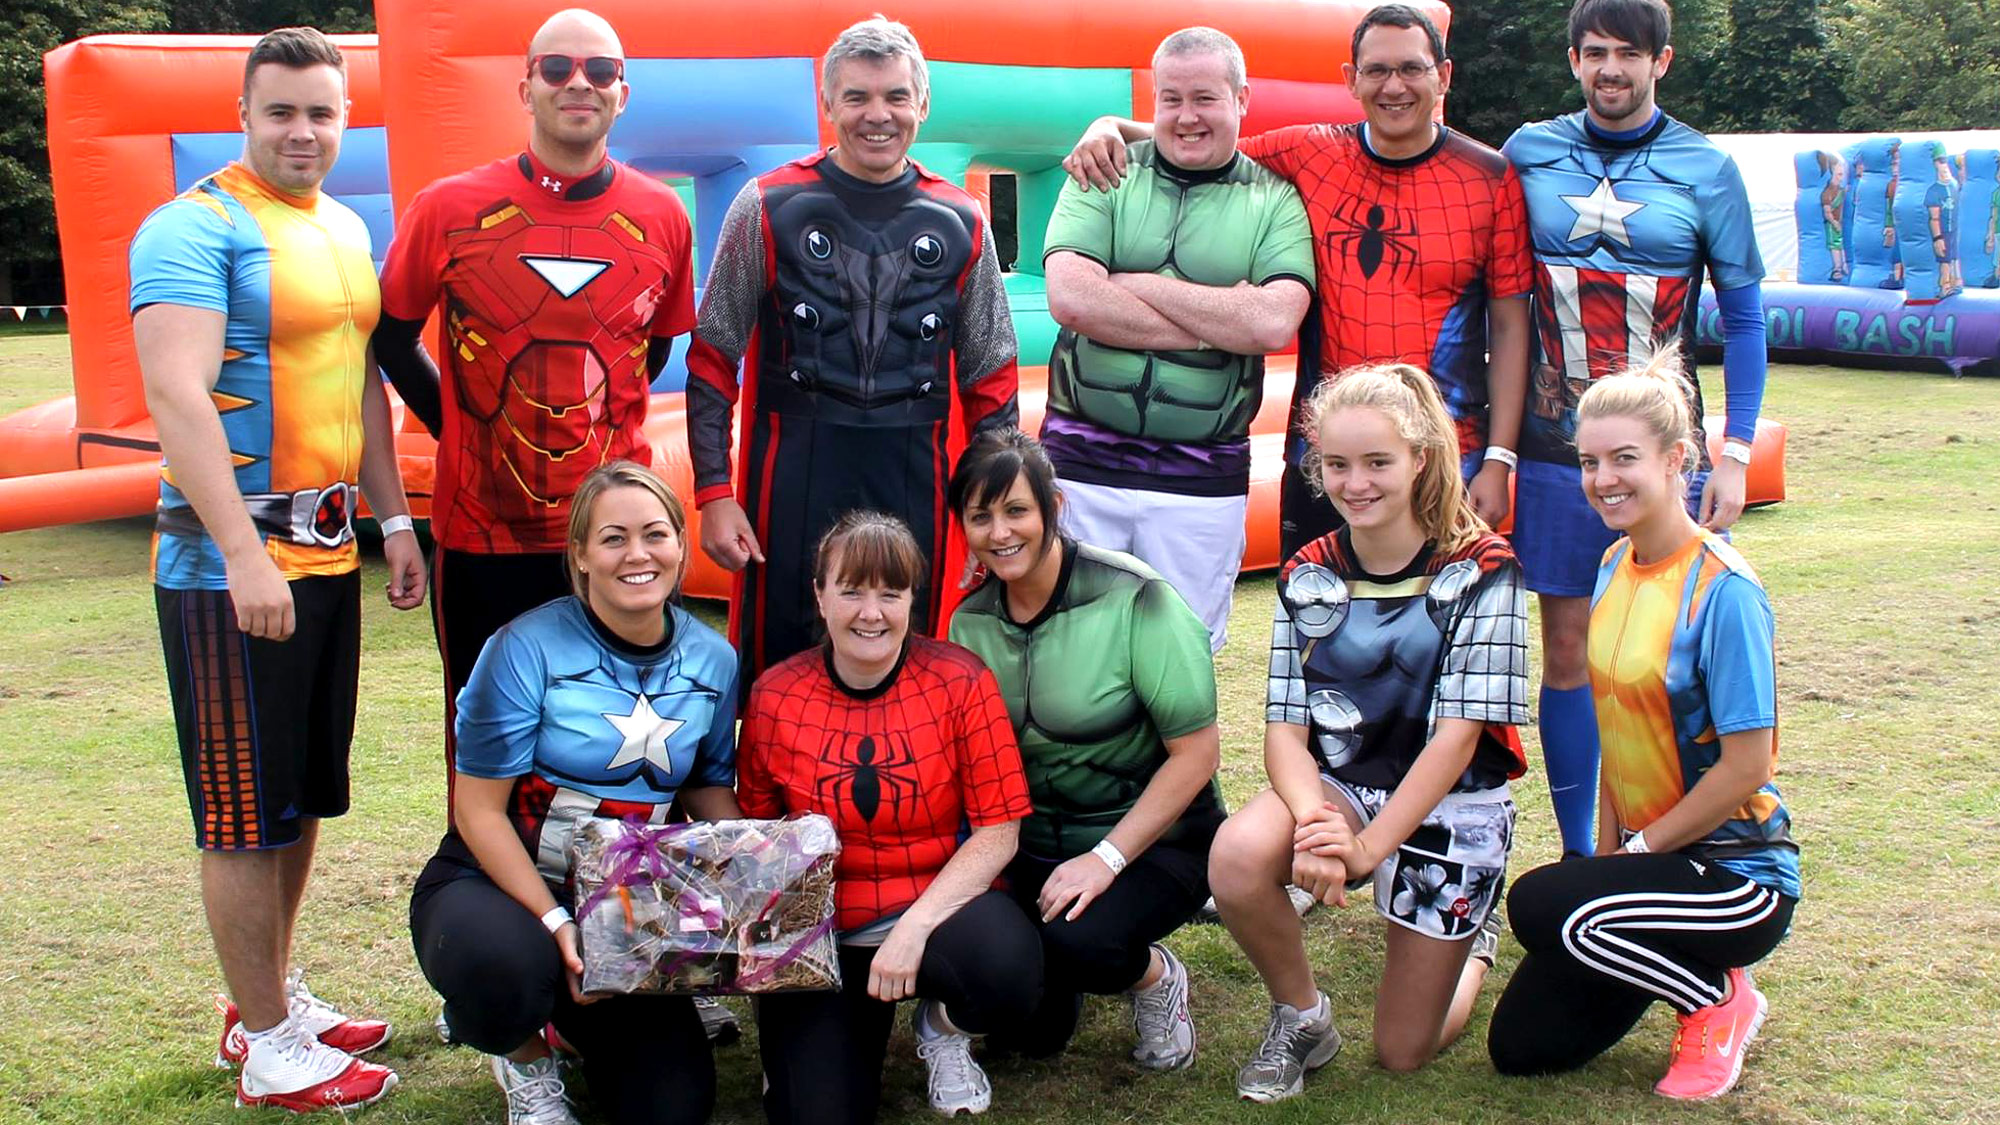 A Superheroes fancy dressed It's A Knockout team